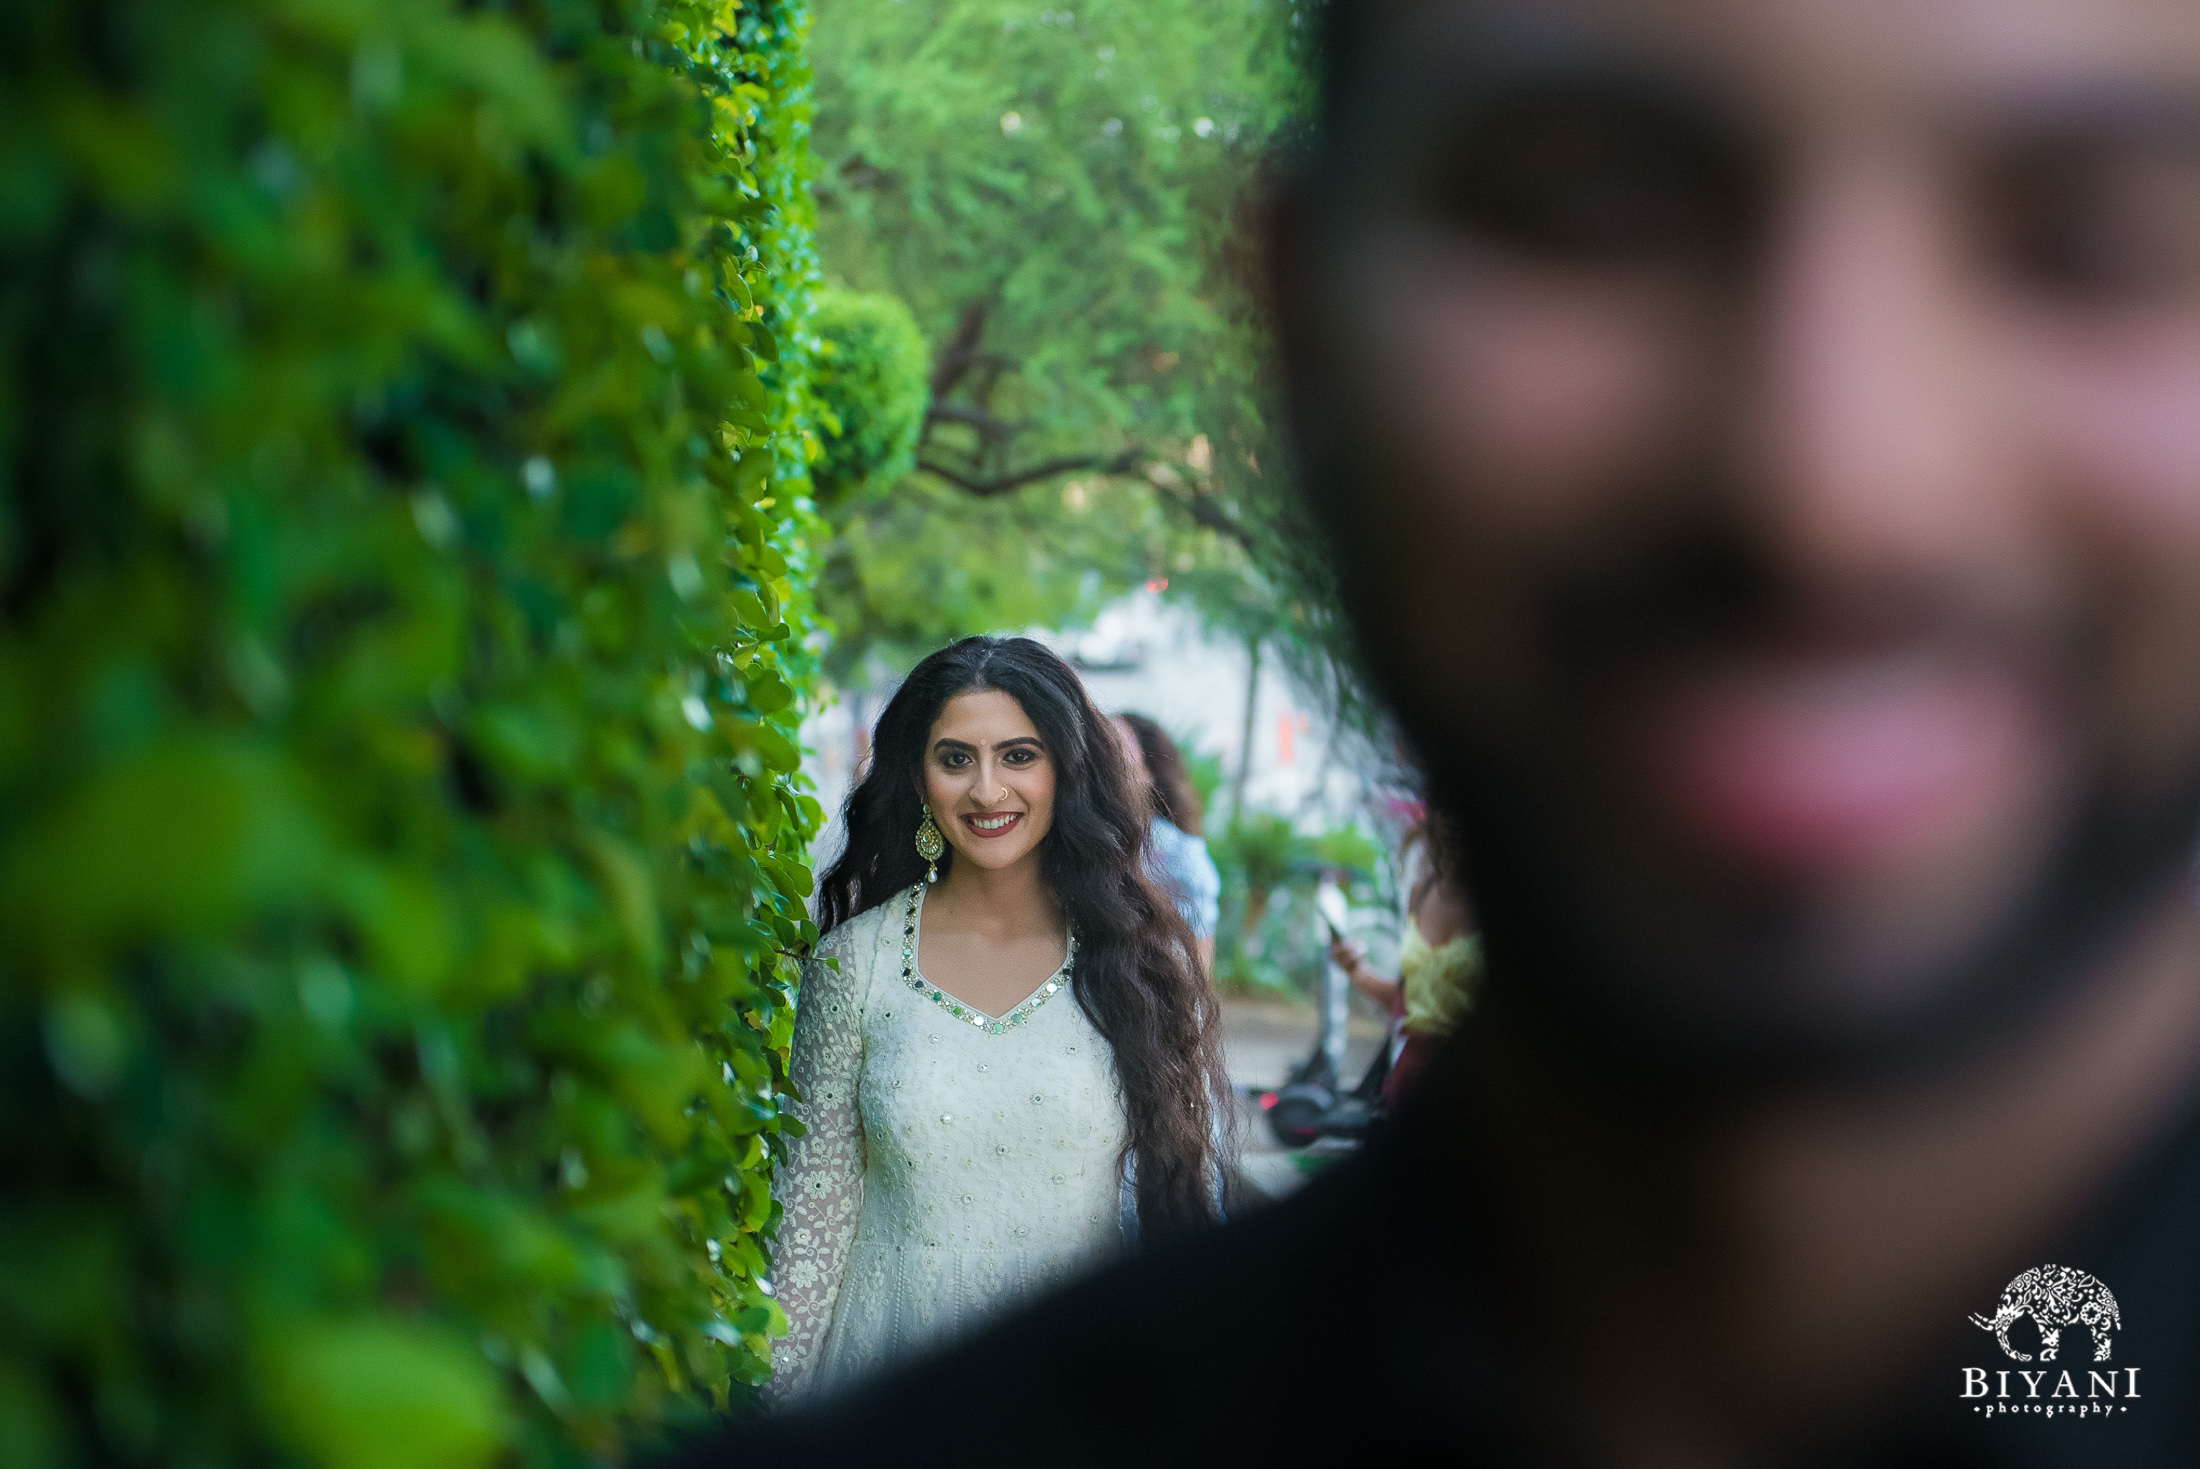 bride in focus sneaking up on groom out of focus from behind